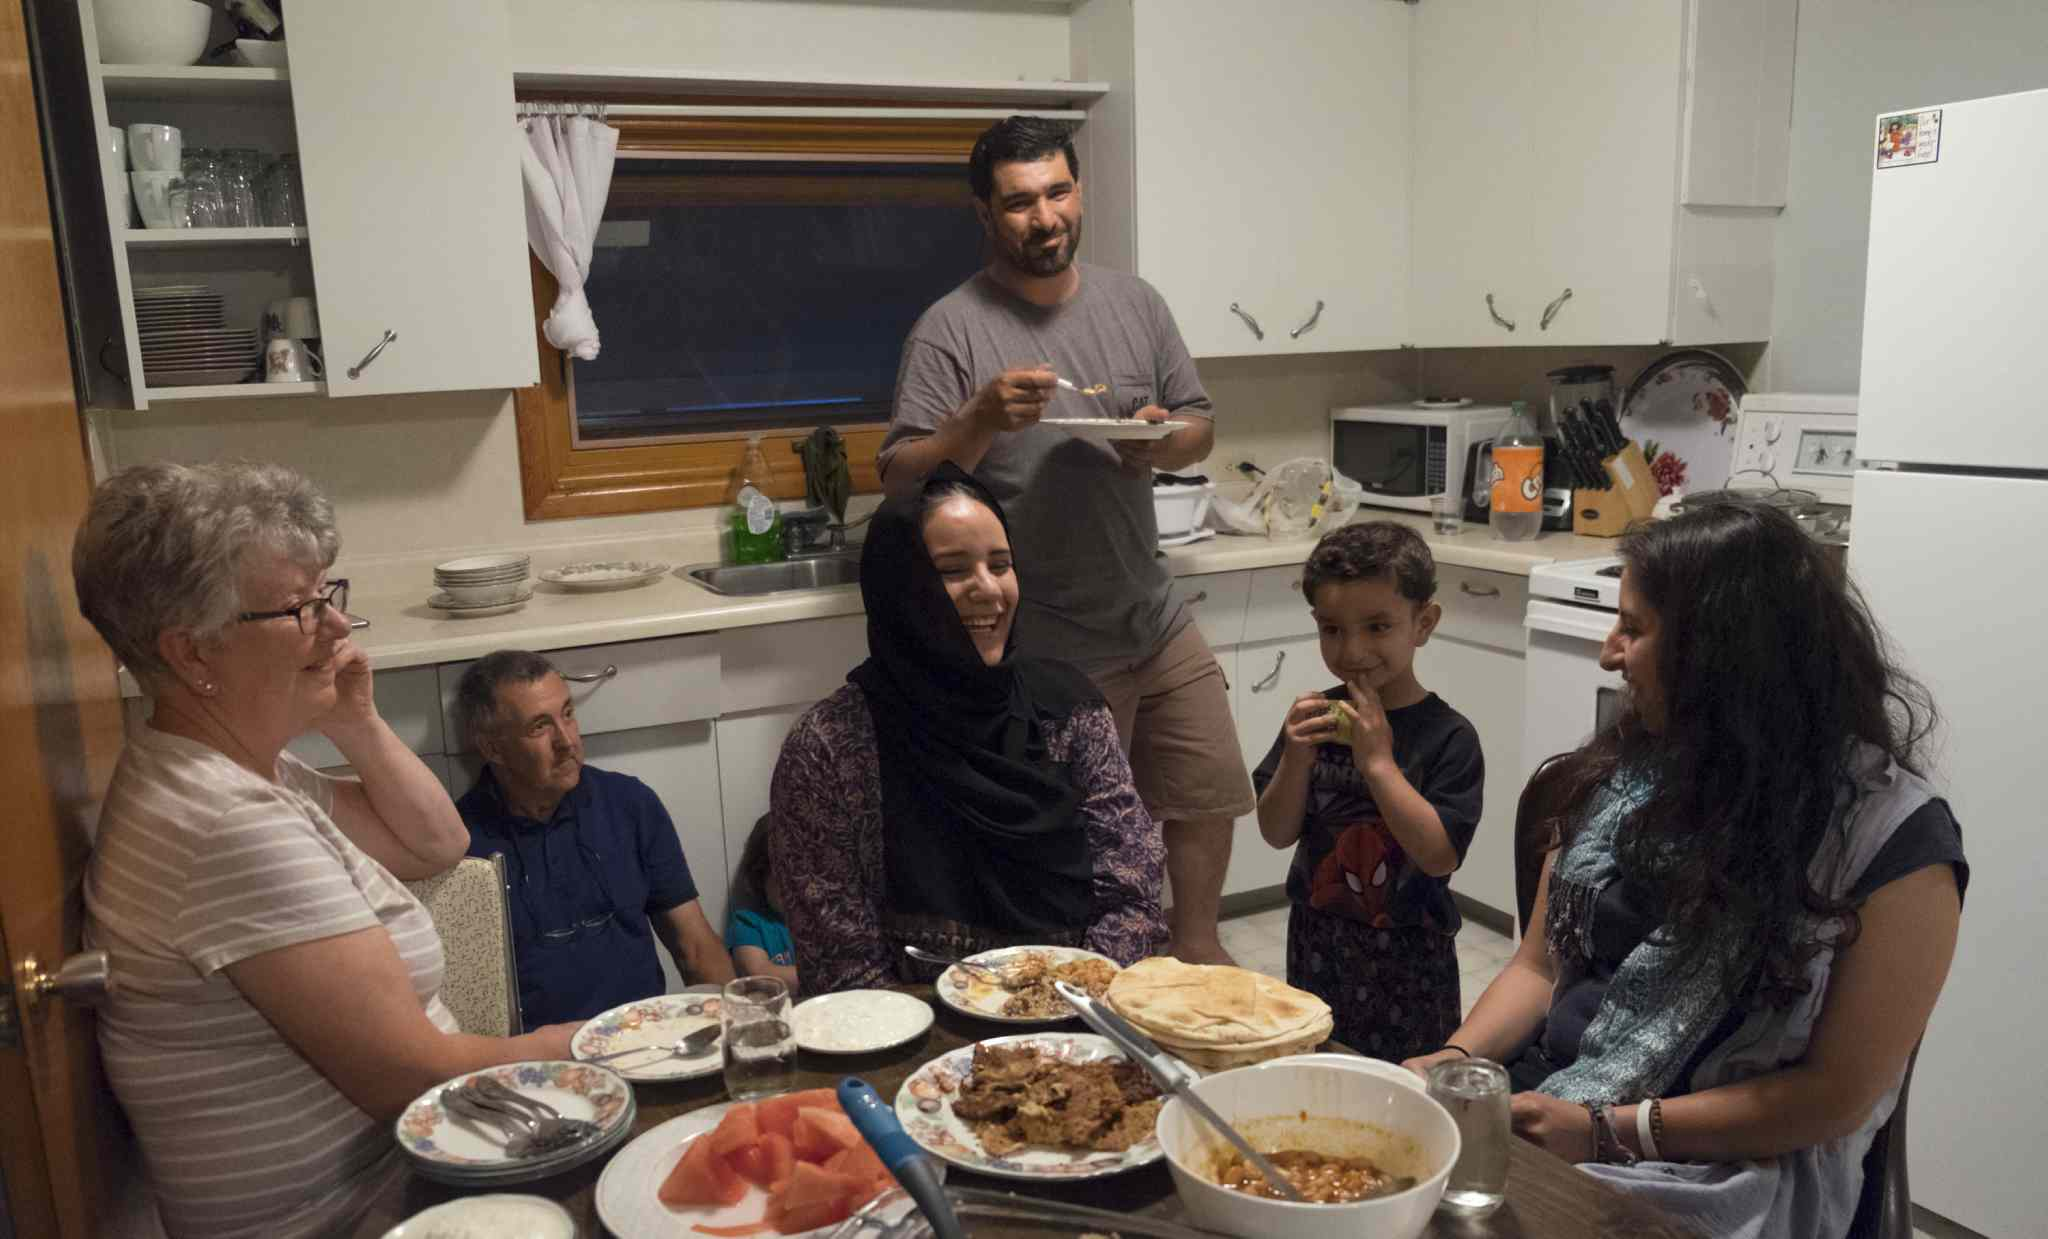 The sponsors and families have grown close over the past four months and often spend time together. Here they break fast during the Holy month of Ramadan.